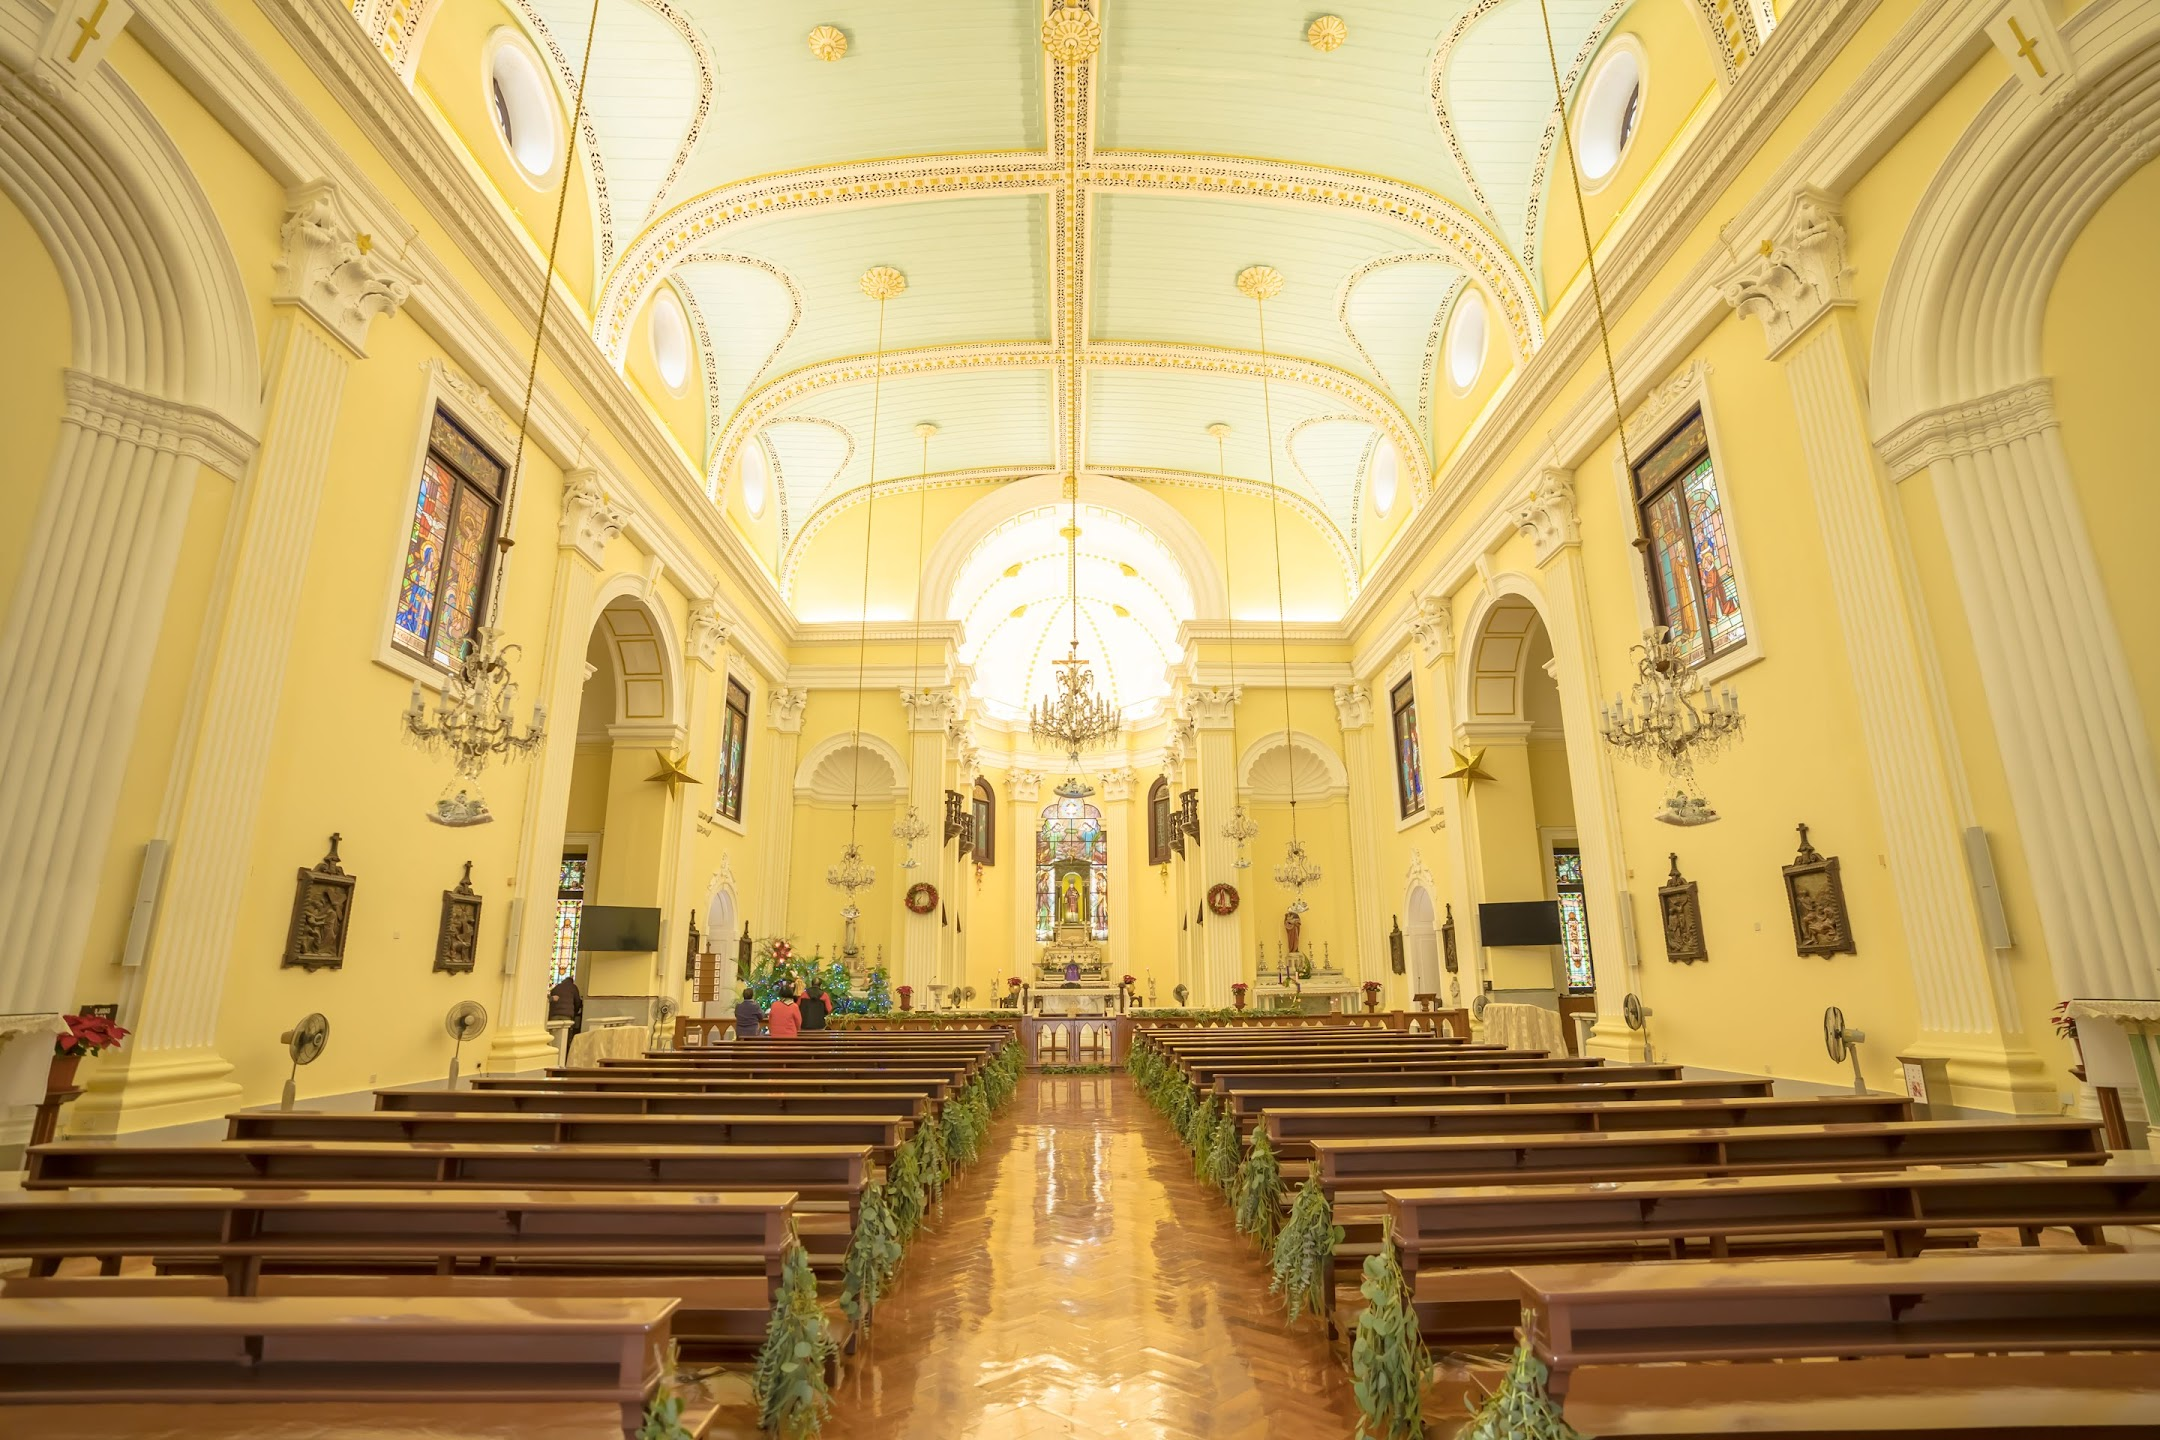 Macau St. Lawrence's Church/聖老楞佐教堂/Igreja de S. Lourenço2